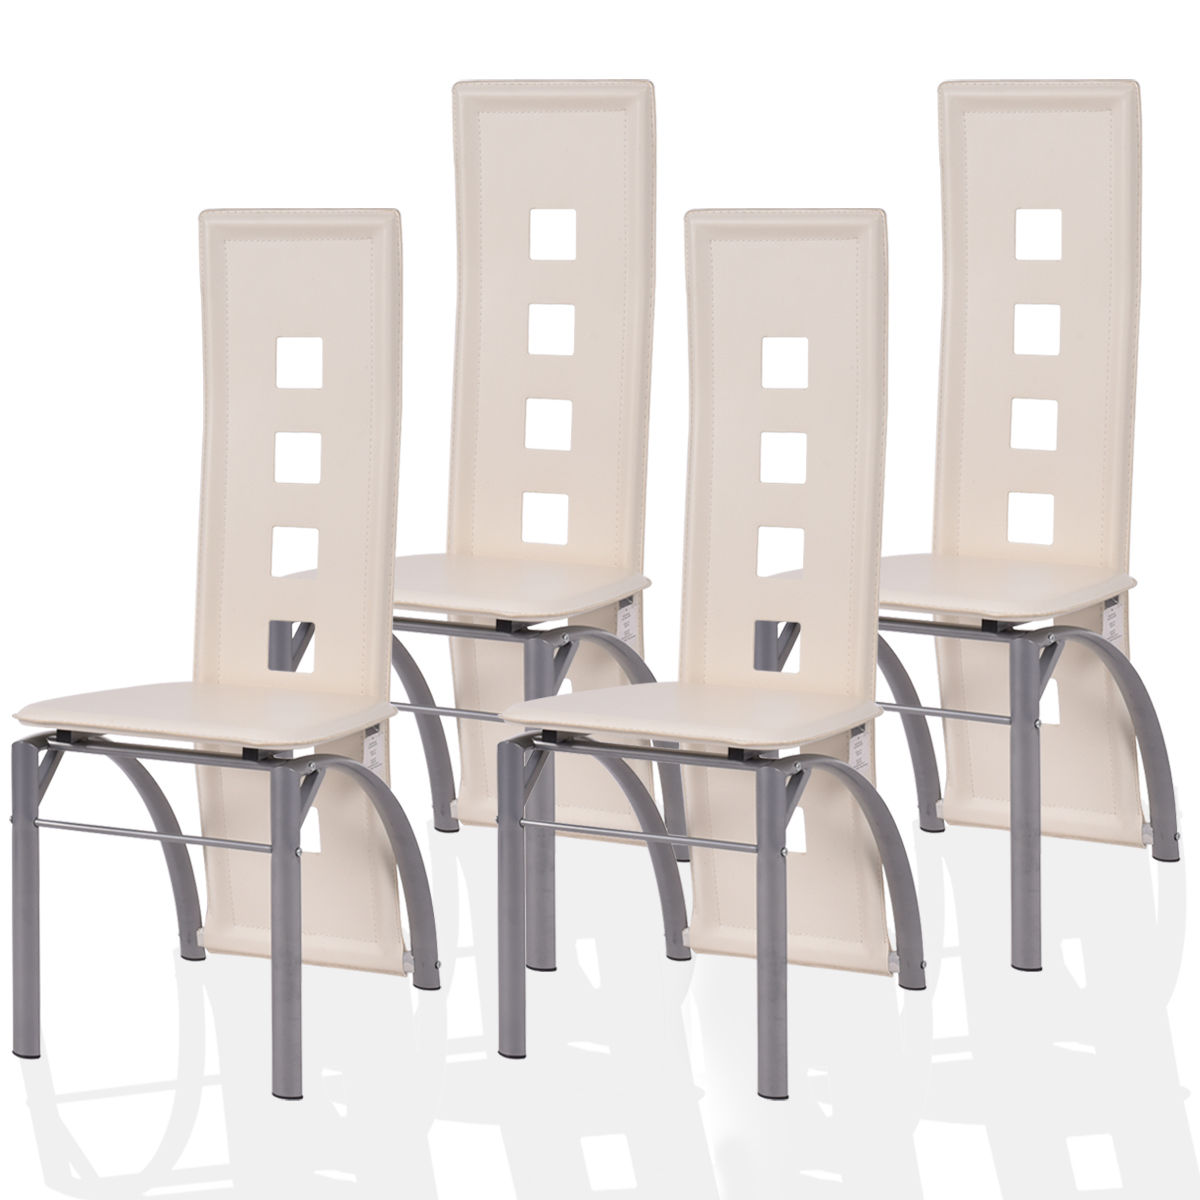 4 dining chairs luxury costway set of dining chairs pu leather steel frame high back home furniture white of